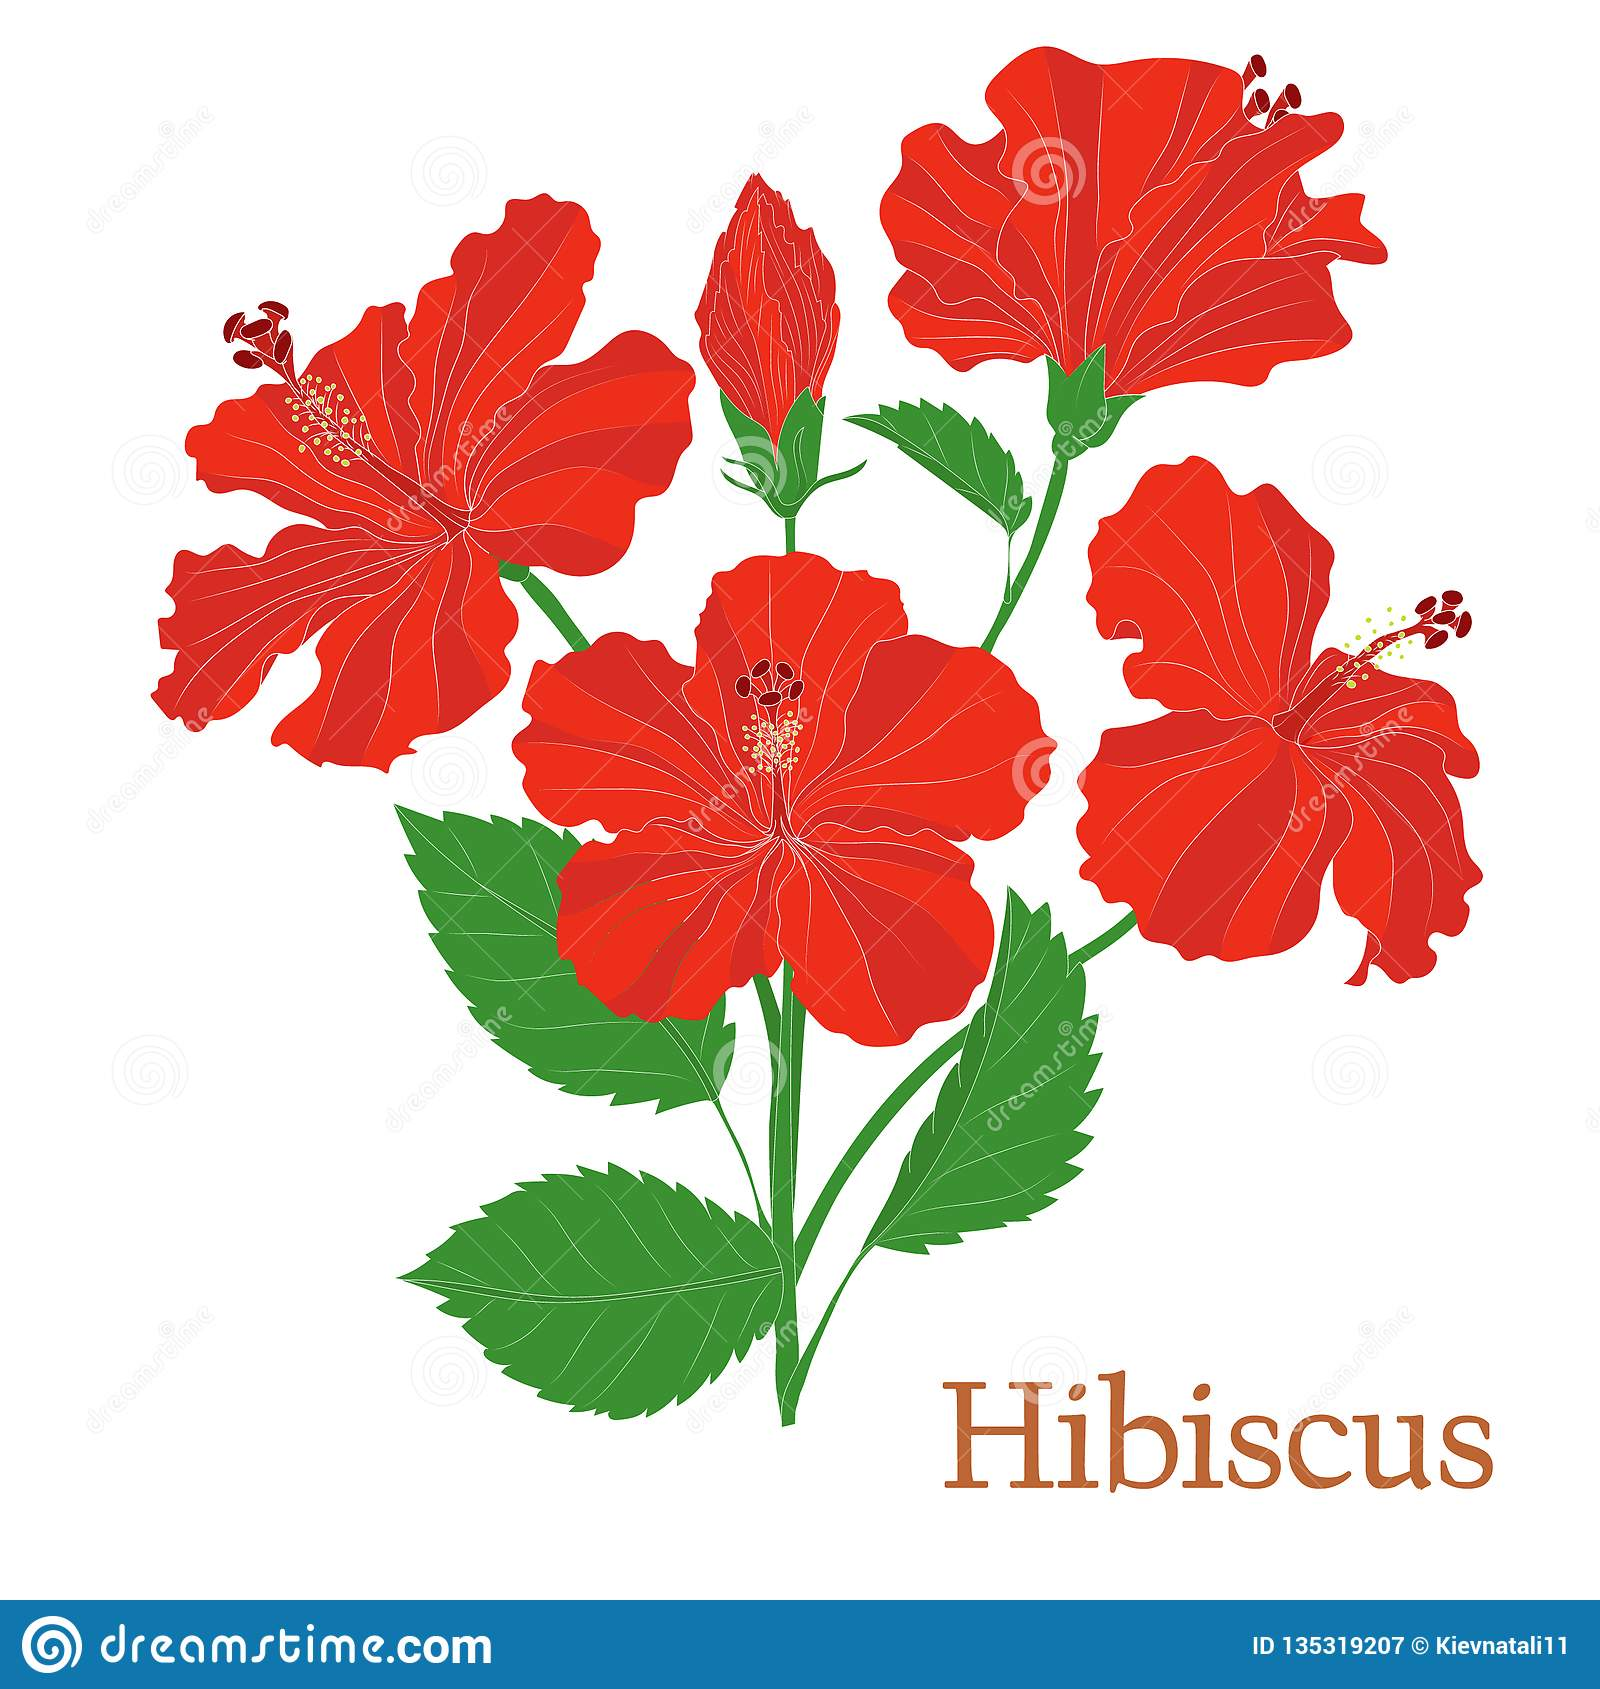 Hibiscus Tea Illustration Of A Plant In A Vector With Flowers For